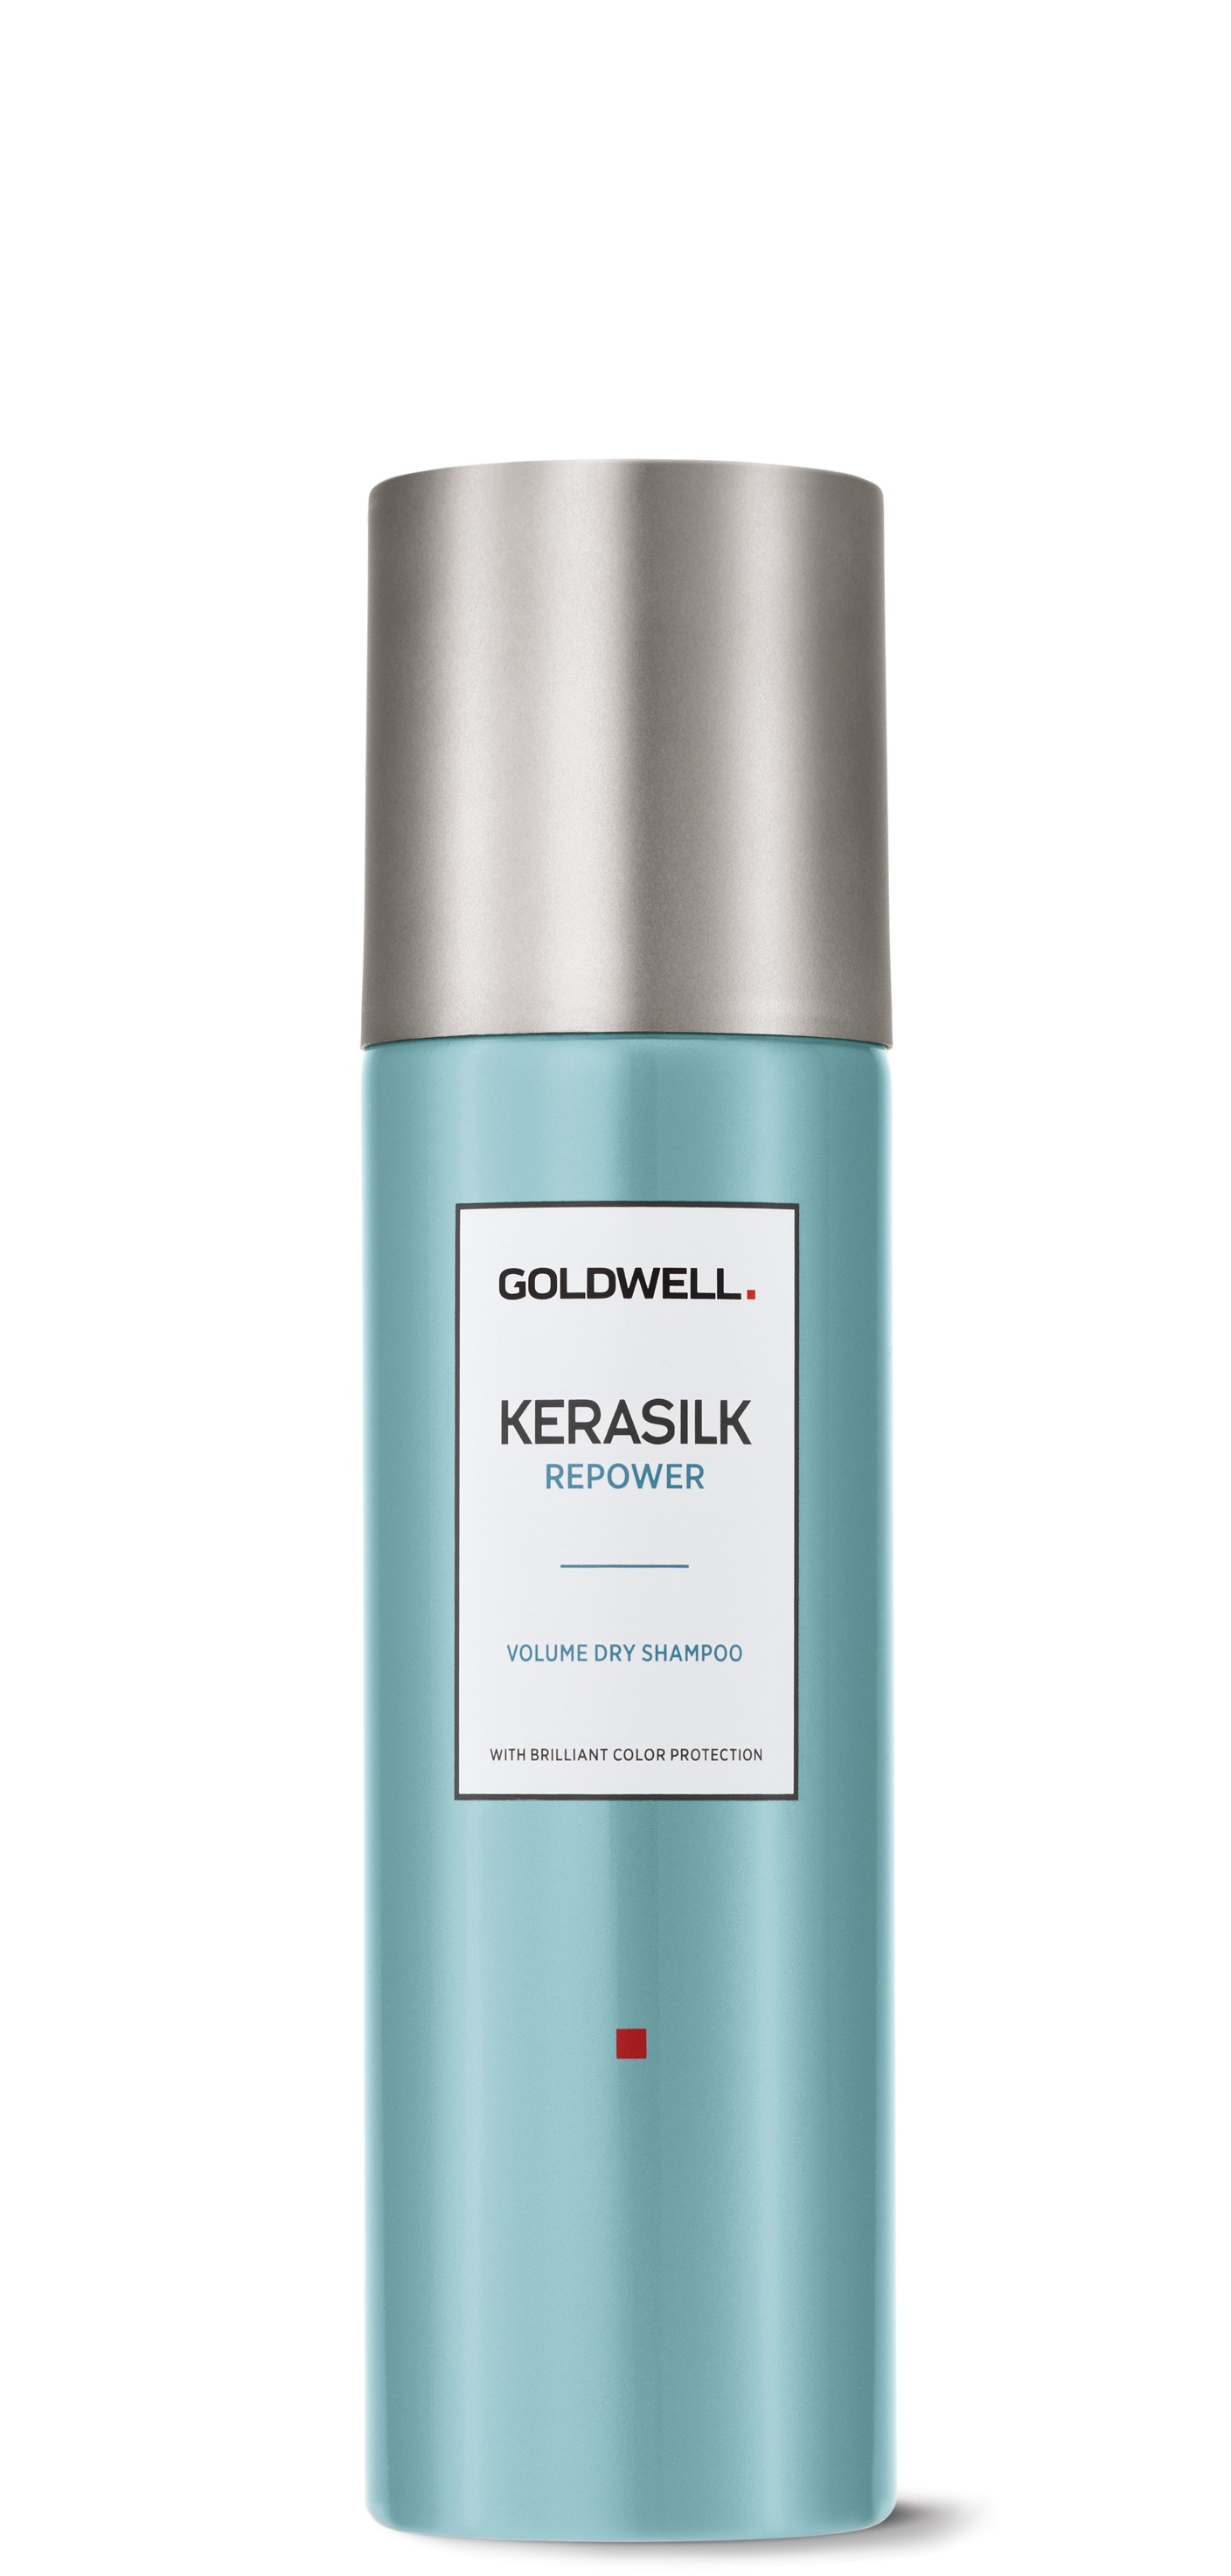 kerasilk repower volume dry shampoo 200ml g nstig kaufen. Black Bedroom Furniture Sets. Home Design Ideas